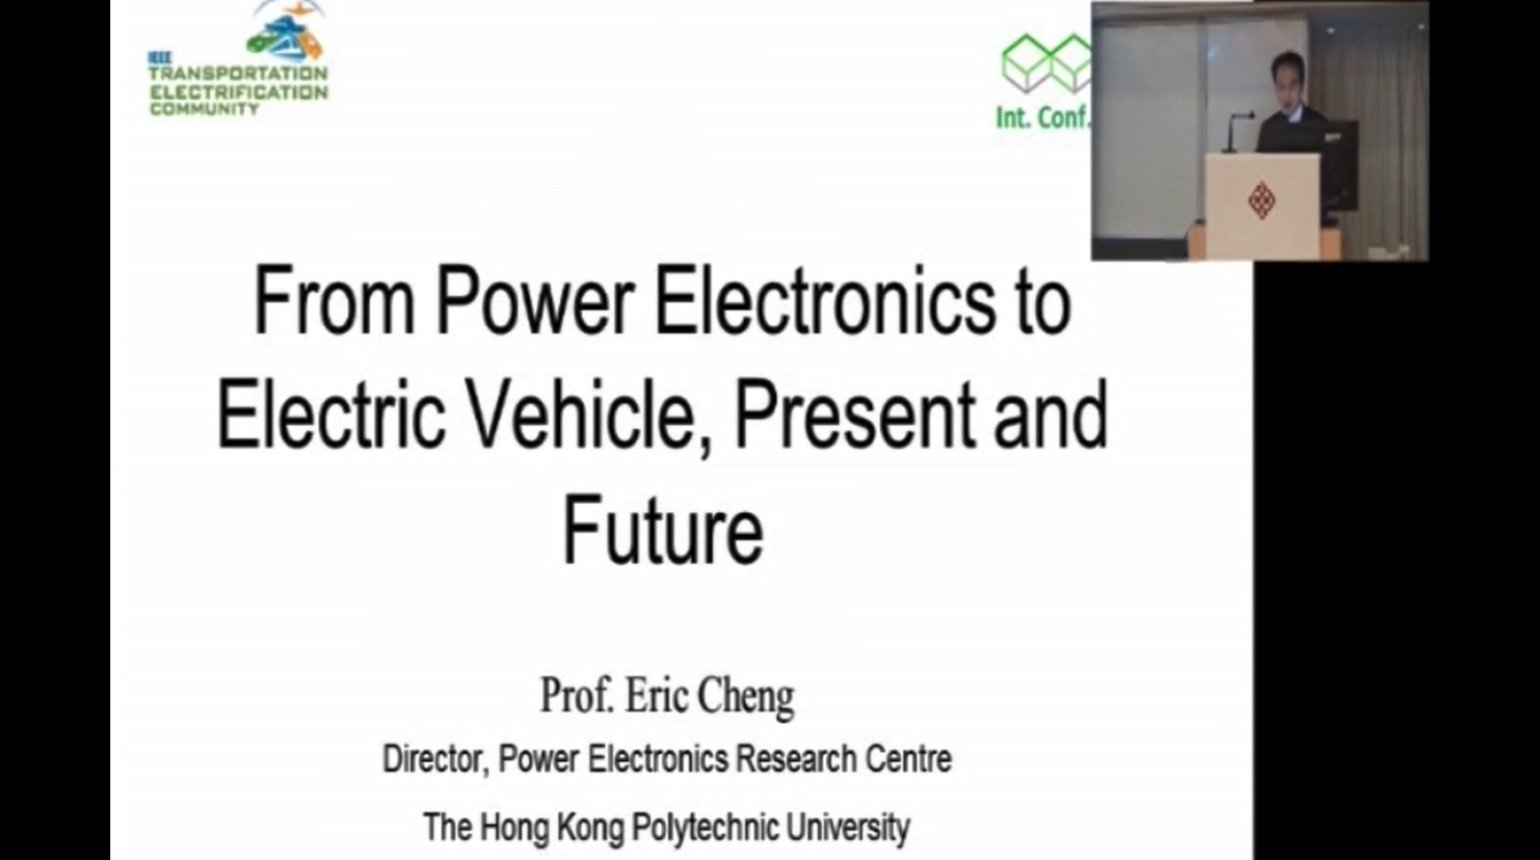 From Power Electronics to Electric Vehicle, Present and Future